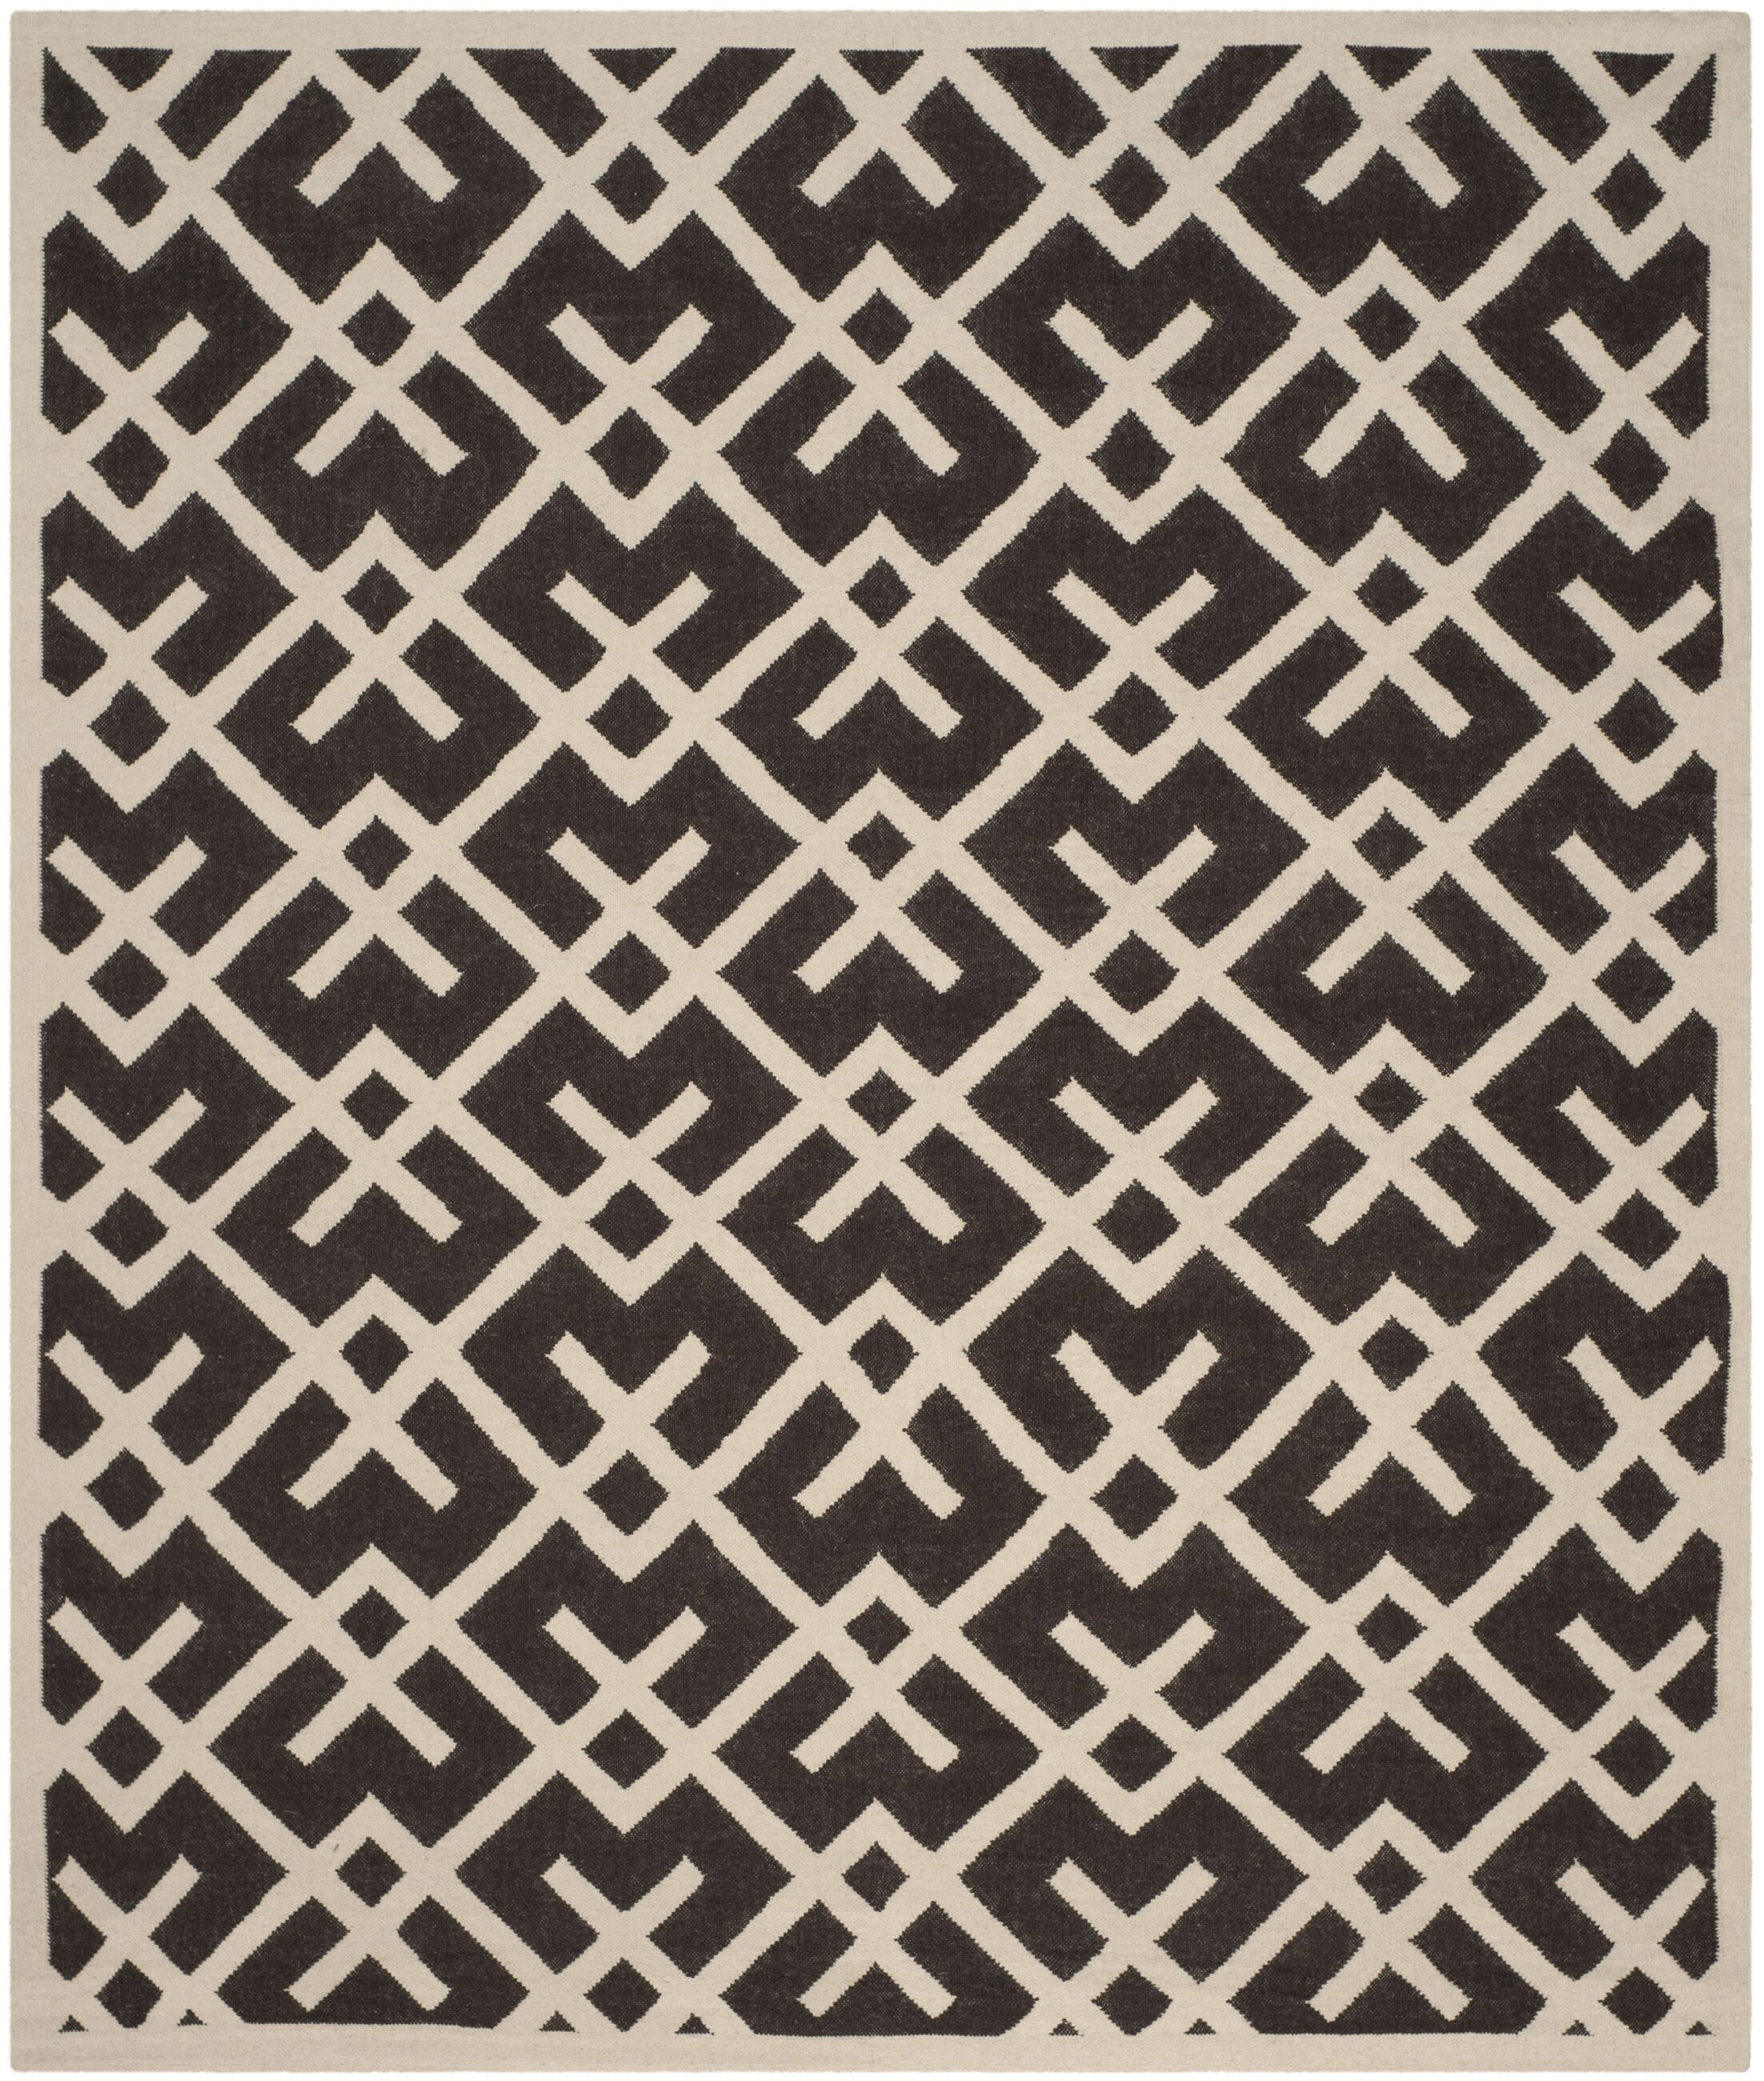 Cassiopeia Handmade Wool Brown/Ivory Area Rug Rug Size: Rectangle 3' x 5'